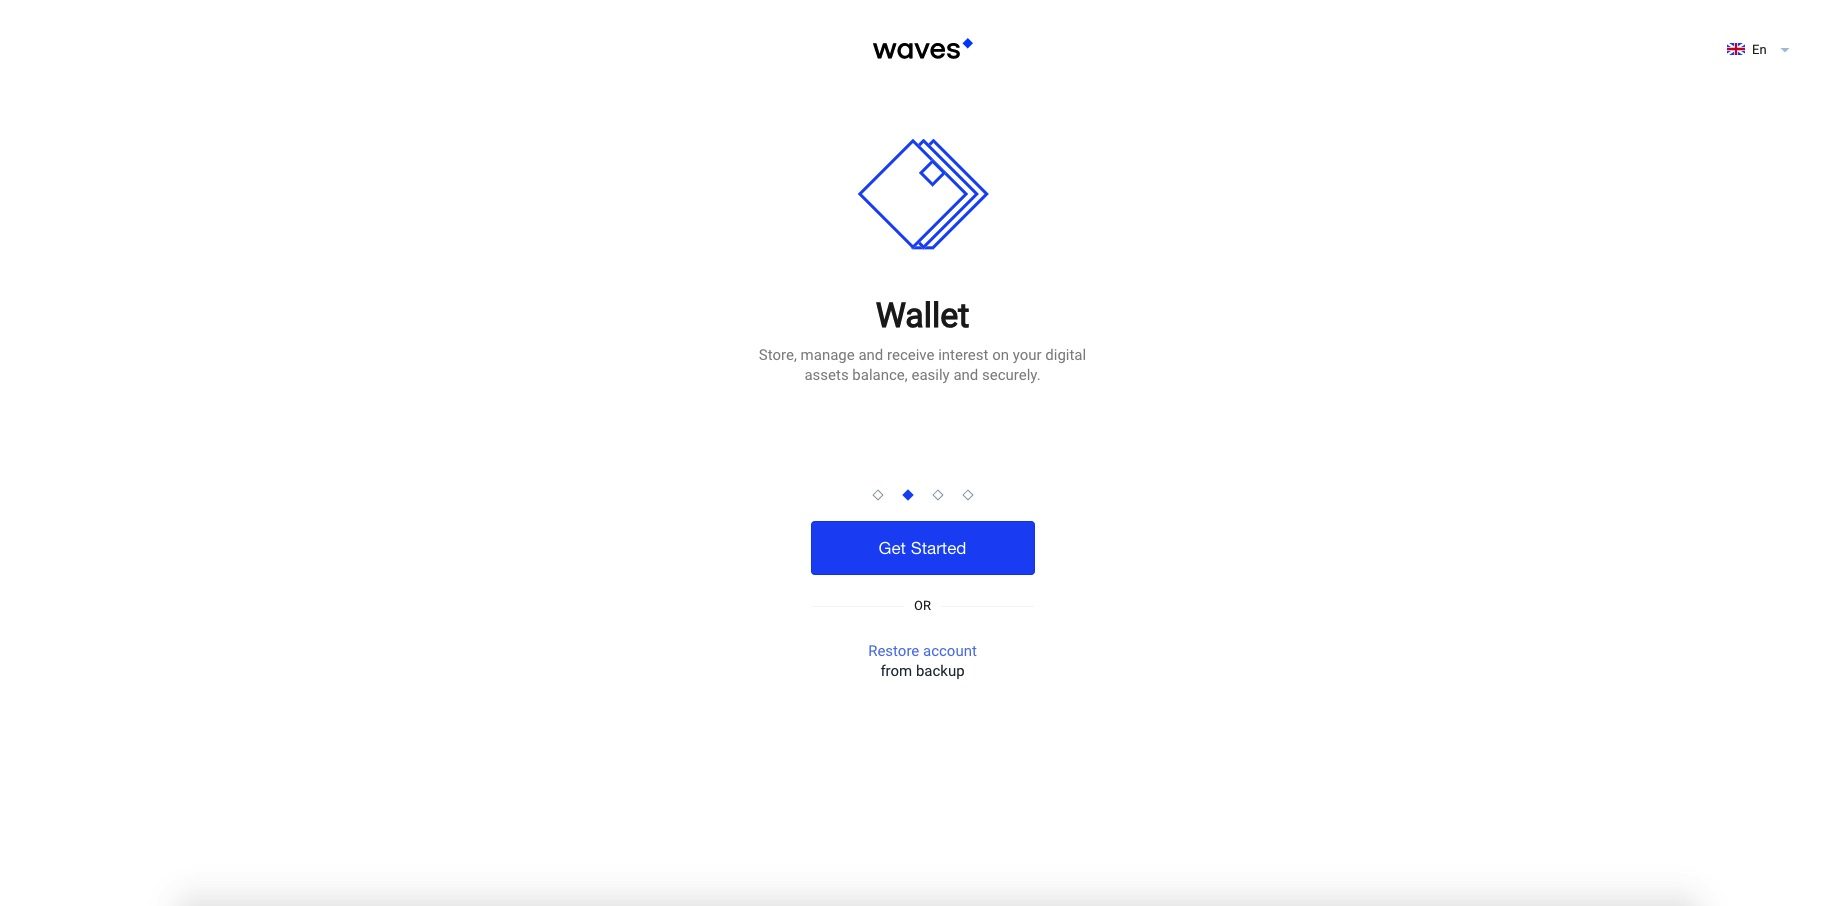 Waves Drop Review A Once Dependable Crypto Faucet Turned